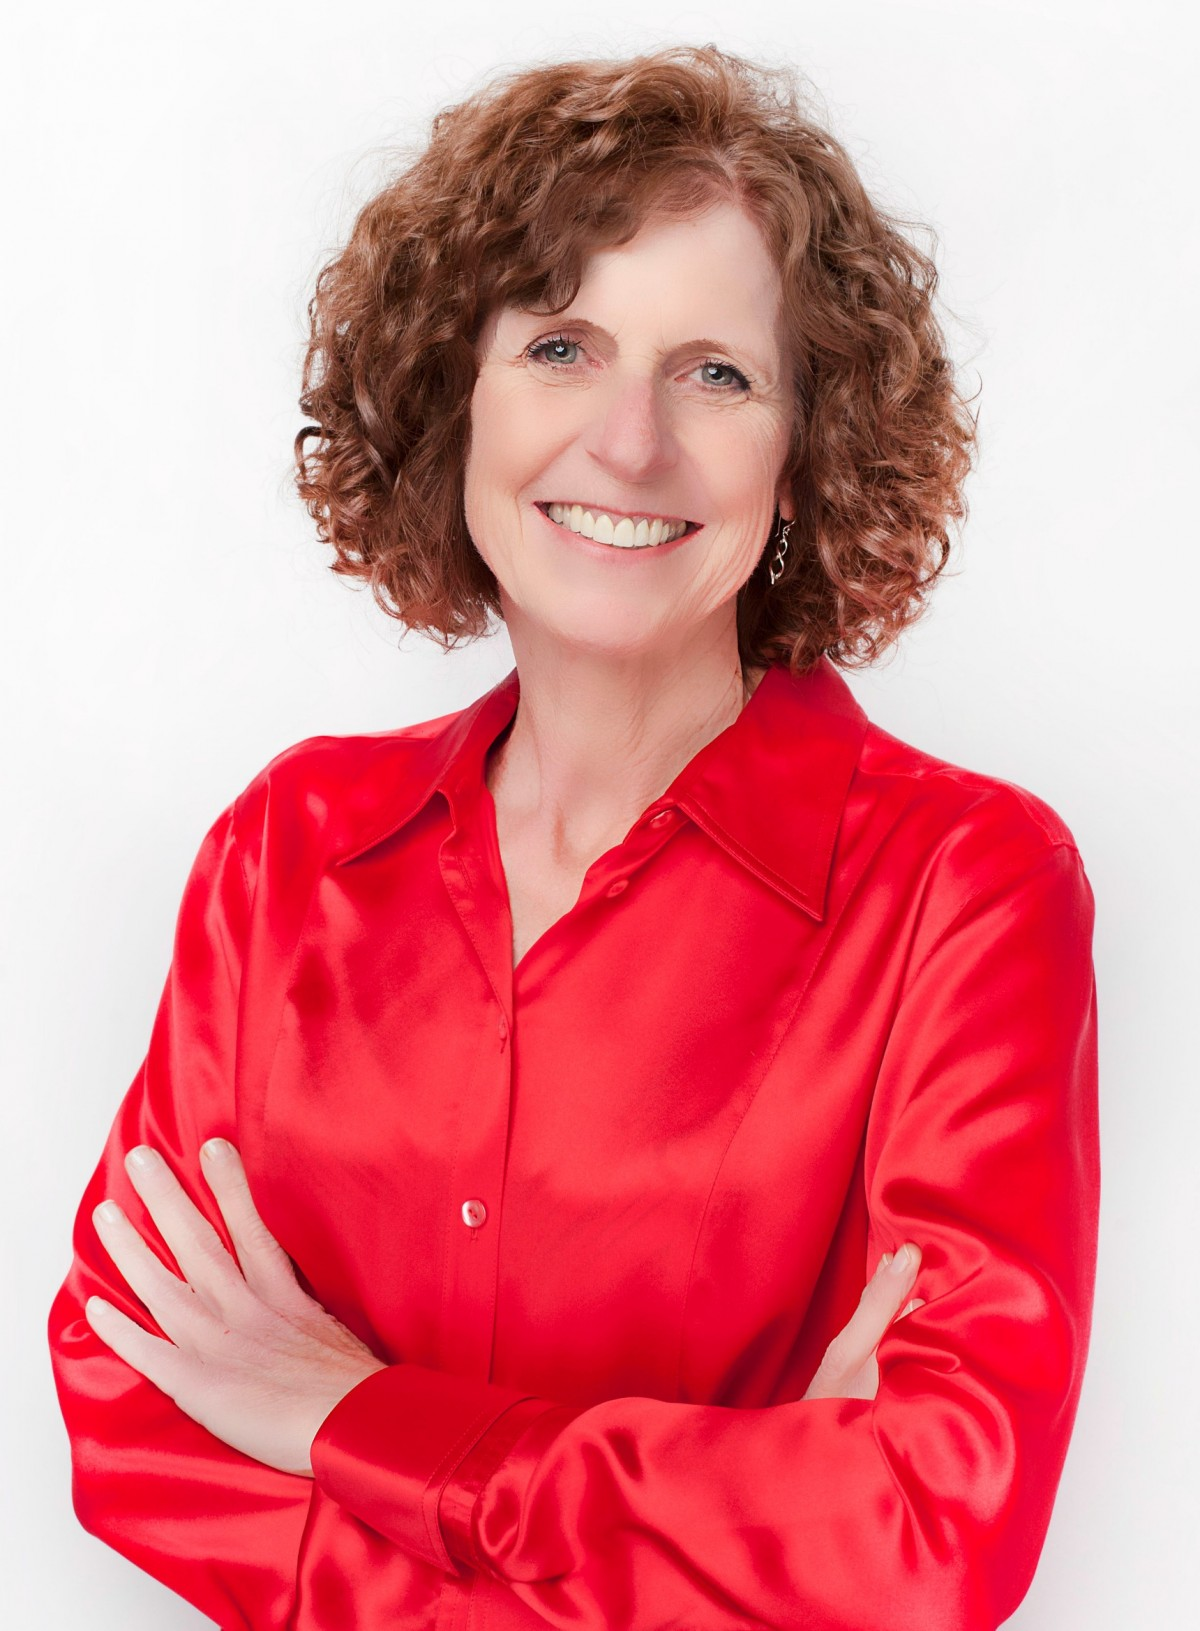 Reverse Mortgage Specialist, Maggie O'Connell